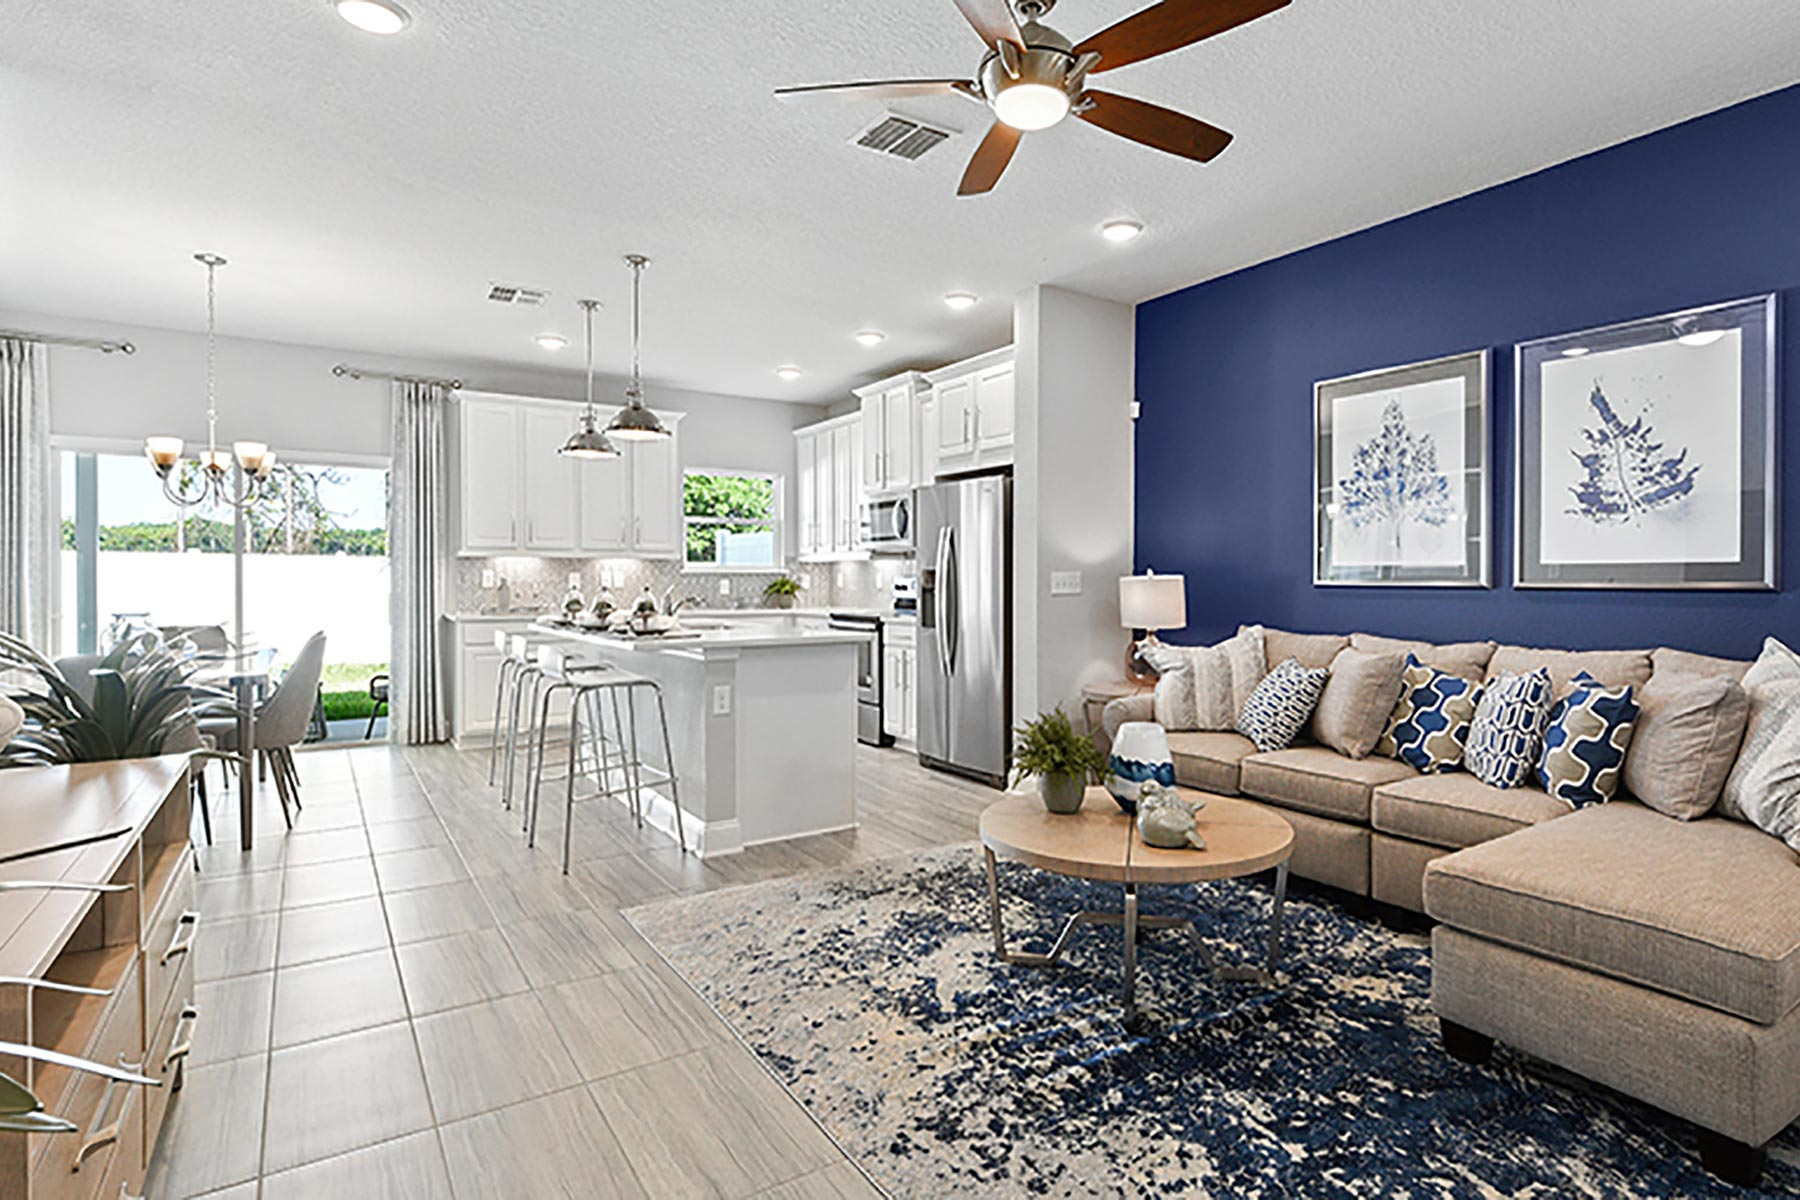 Retreat Plan Greatroom at Wells Creek in Jacksonville Florida by Mattamy Homes